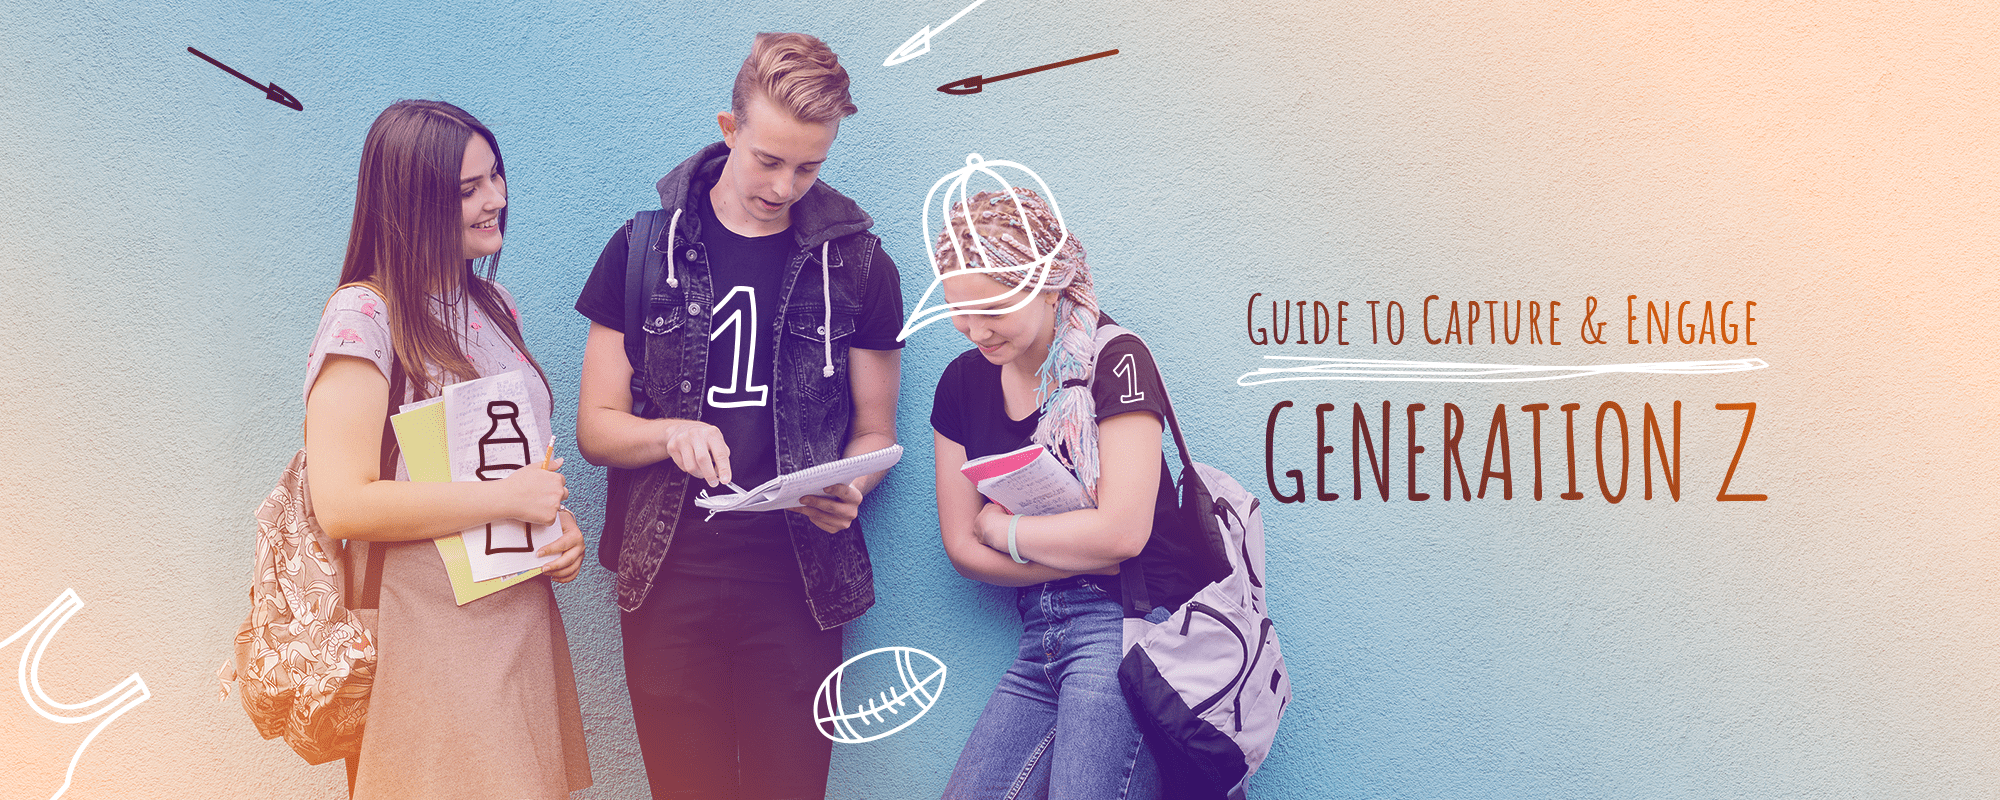 An Extensive Guide to Engage and Capture Generation Z